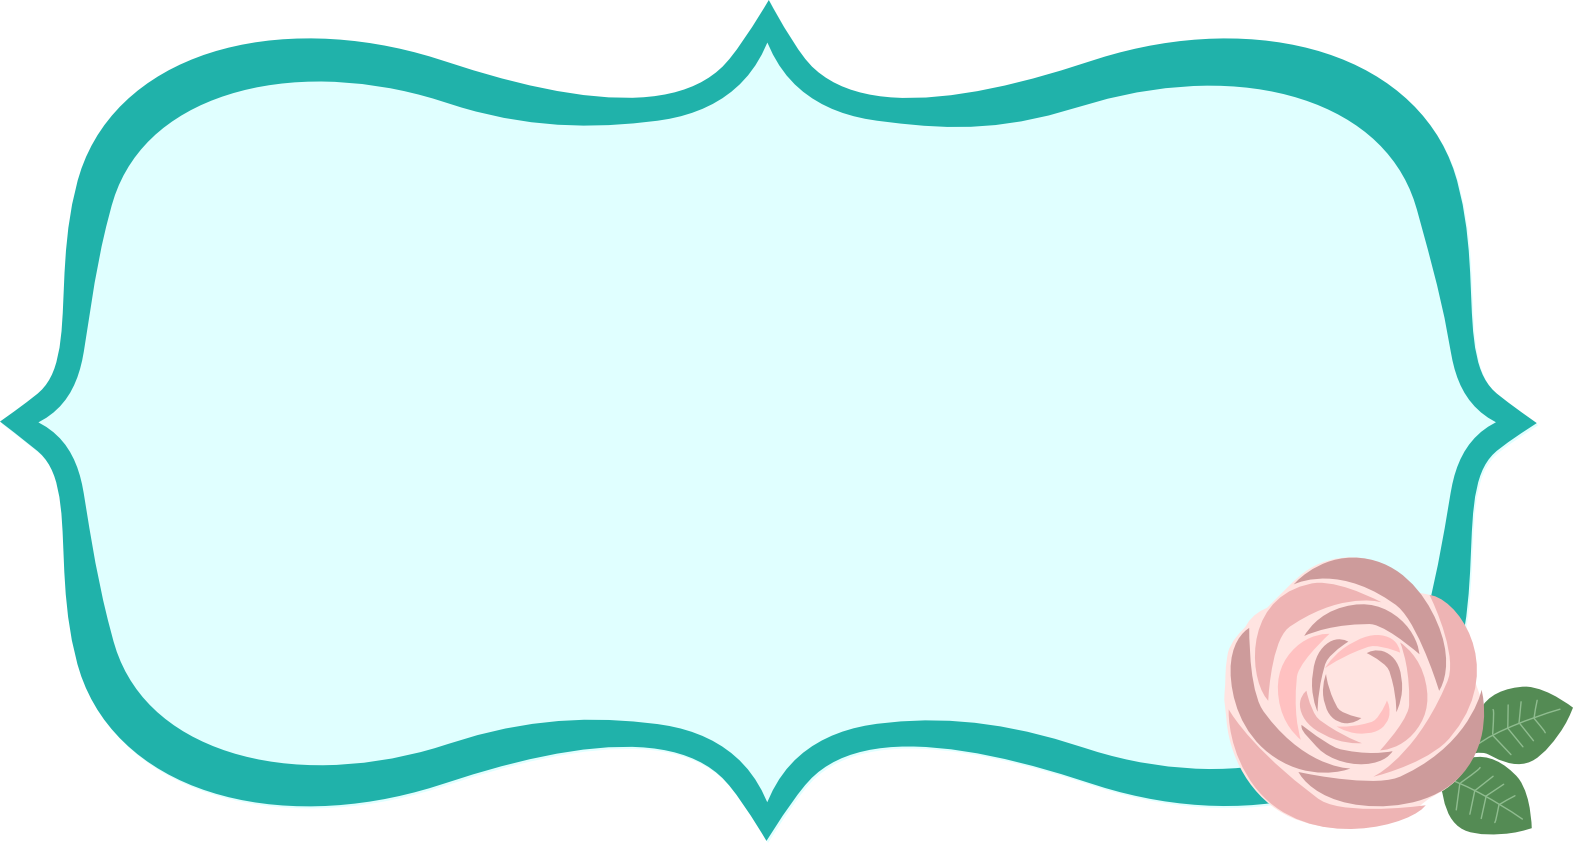 Label clipart turquoise. Images of fancy